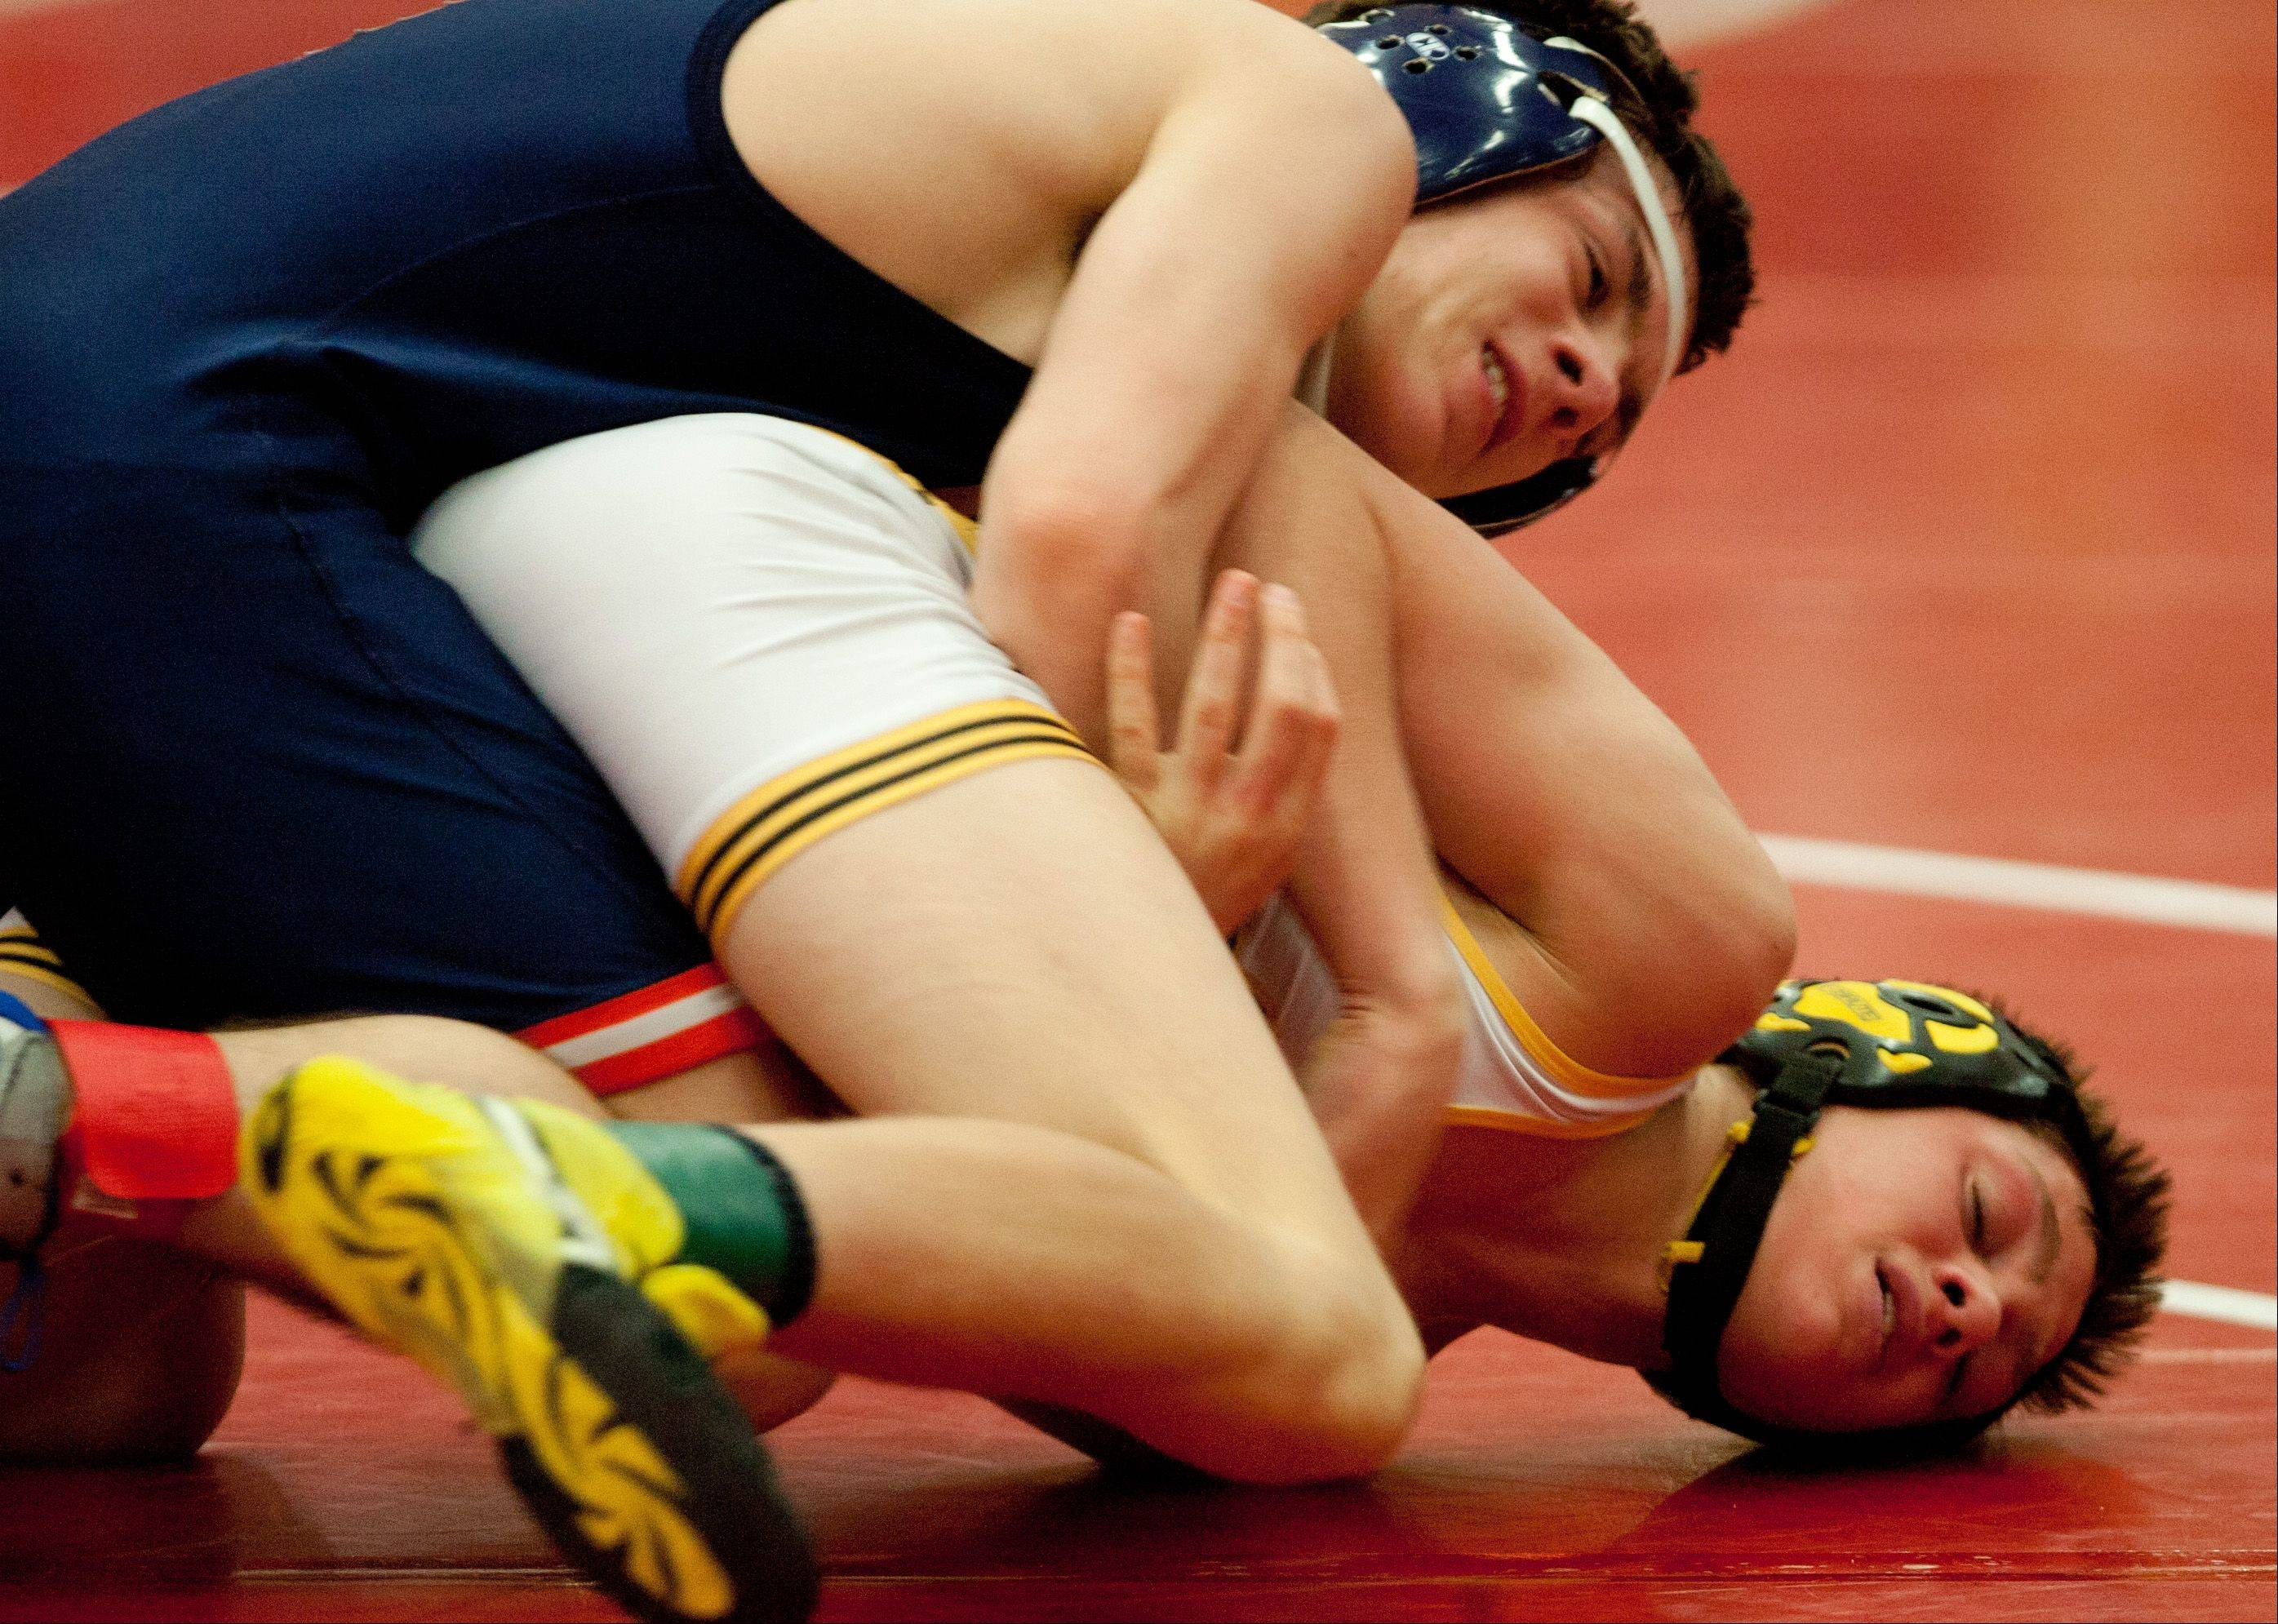 Naperville North's Jake Kruk, top, defeats Metea Valley's David Veitch in the 120-pound class of the Class 3A Naperville Central Wrestling Regional.